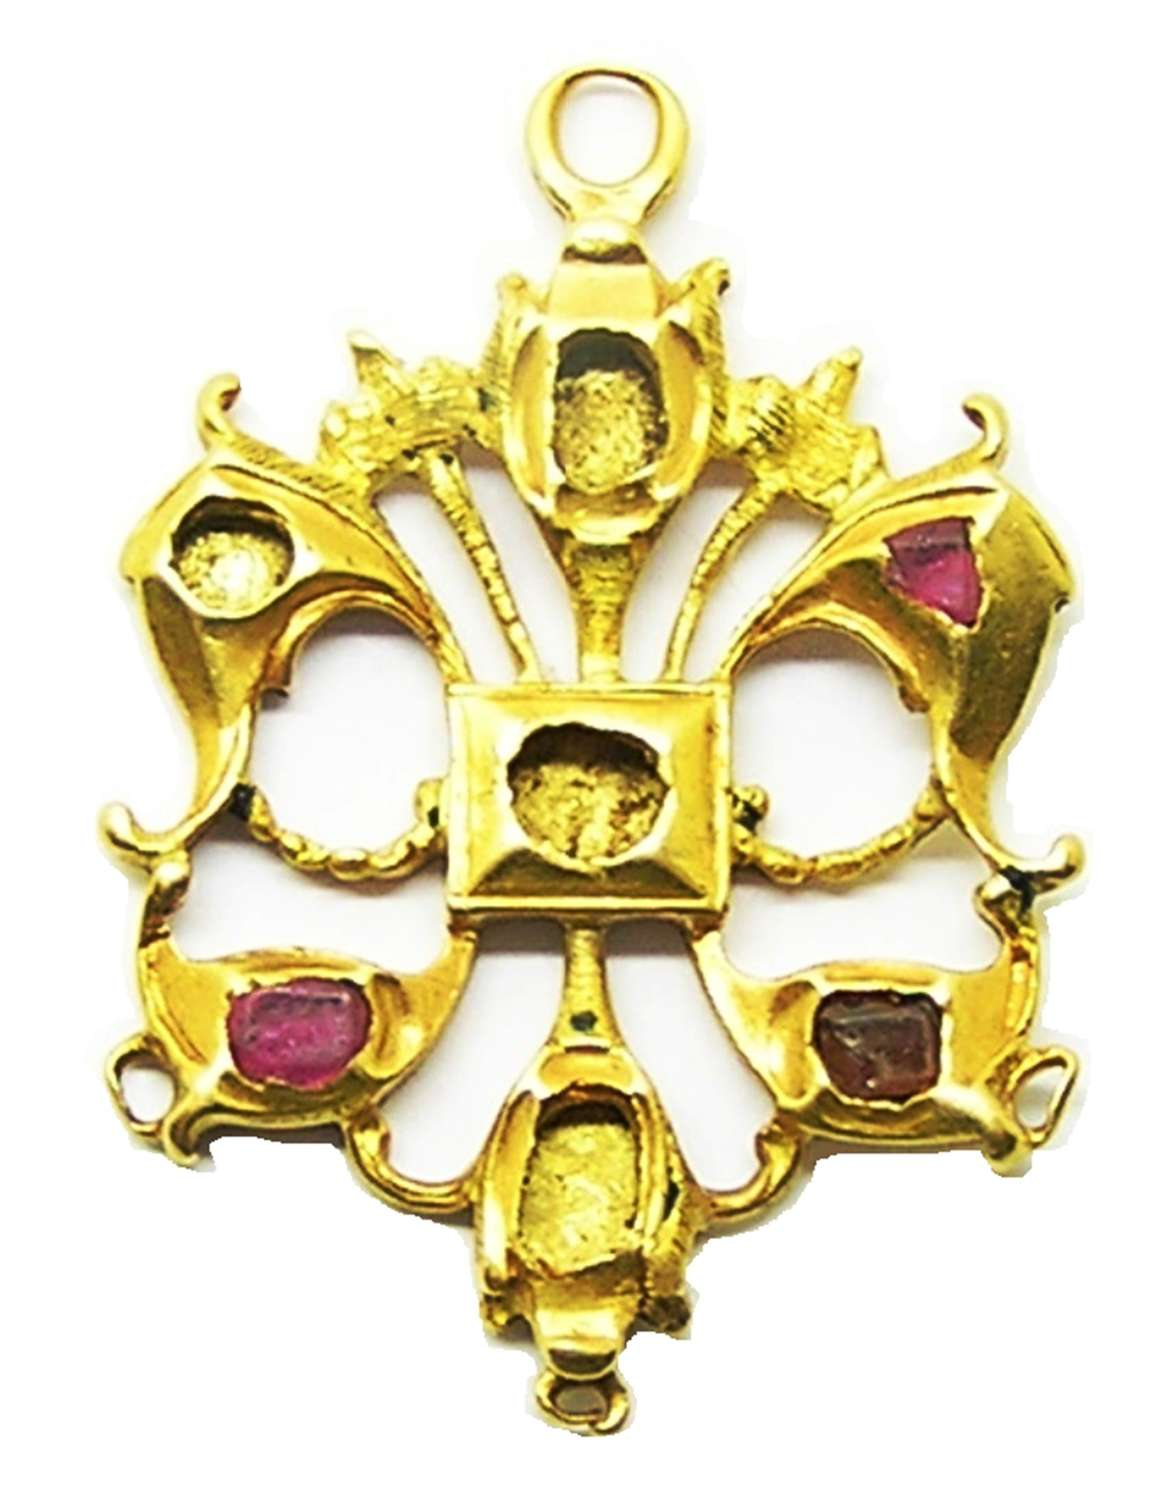 RARE Renaissance gold and ruby pendant